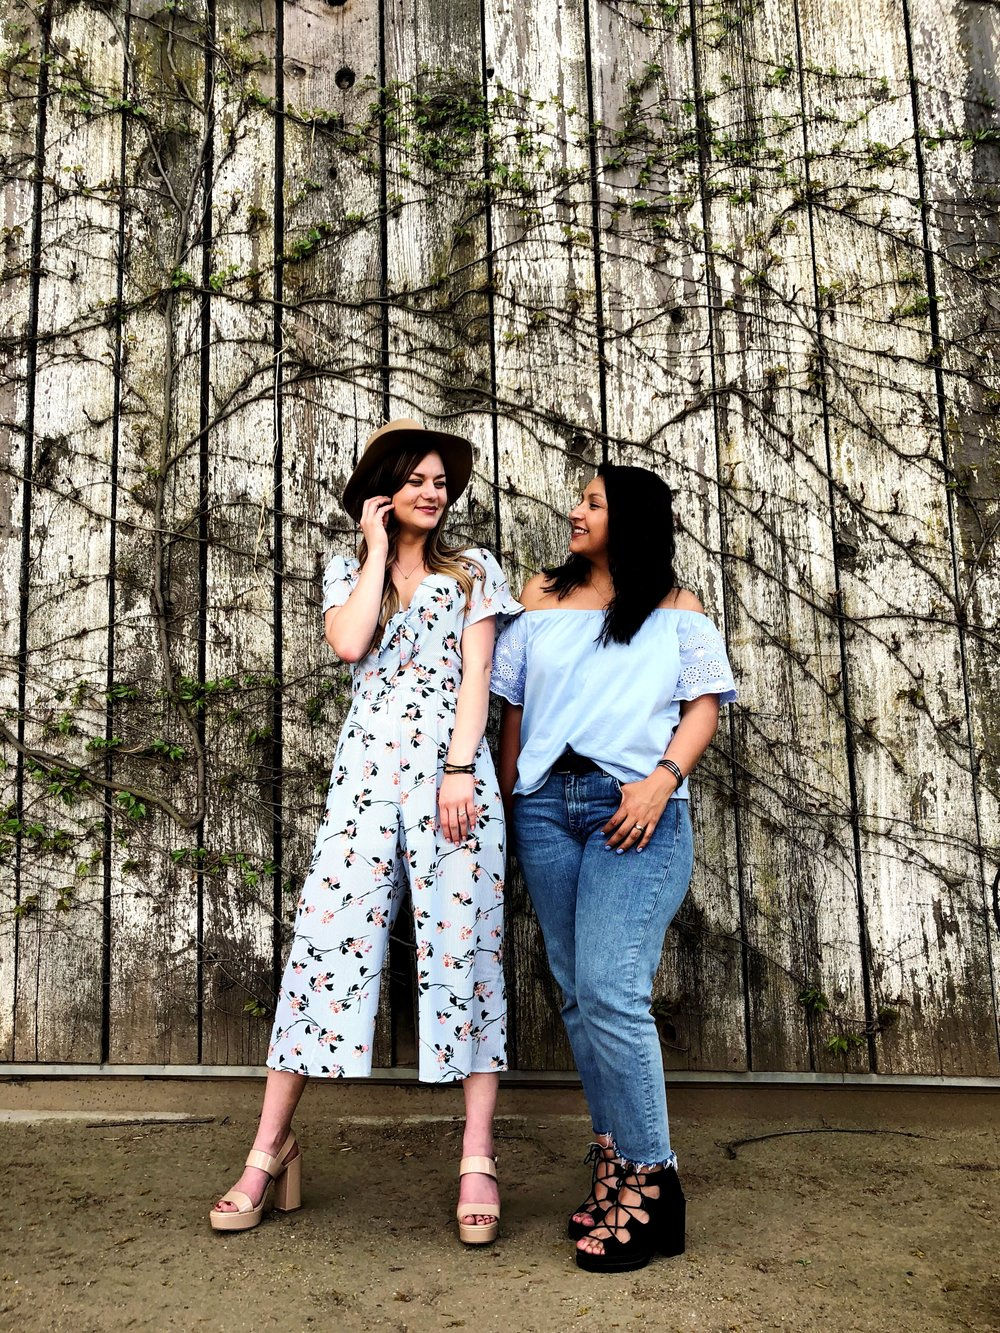 BFF wine tasting adventure with pastel color inspired OOTD